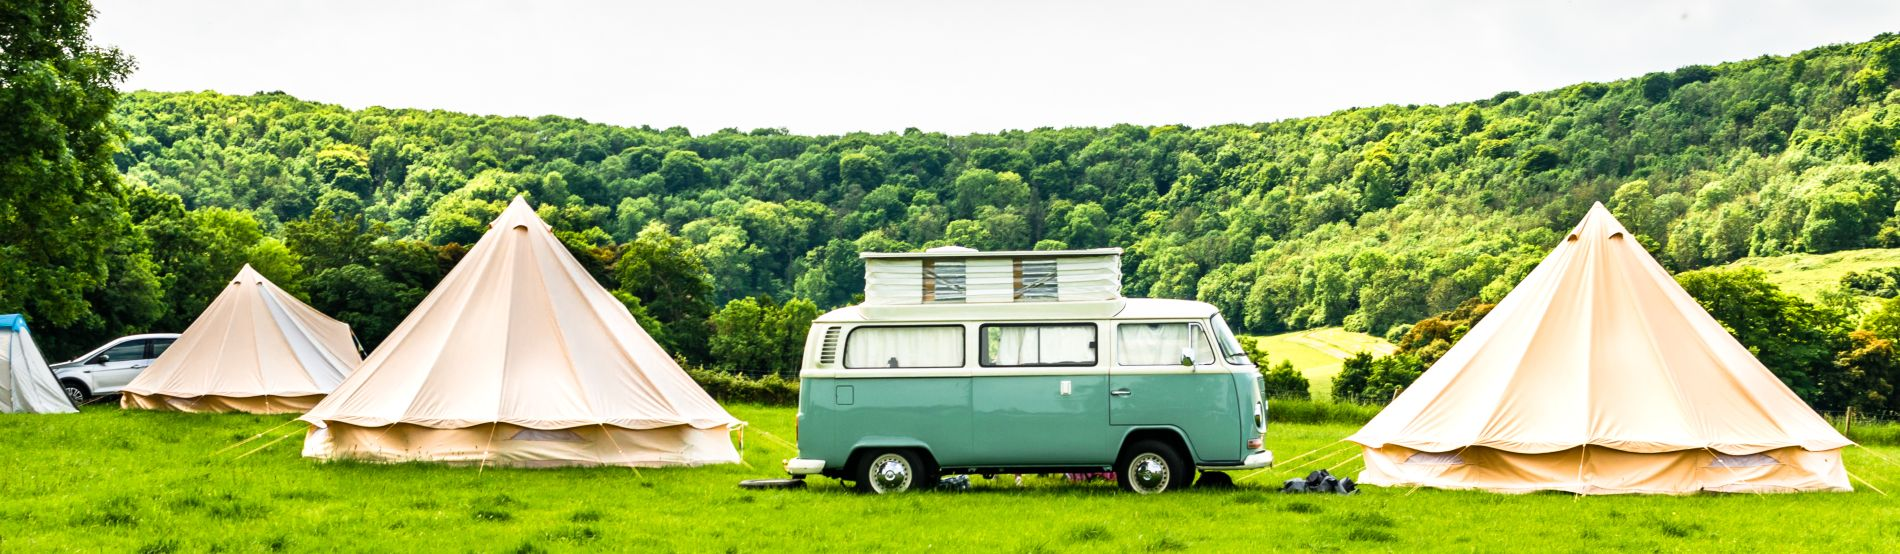 vw camper at a glamping site in the english countryside